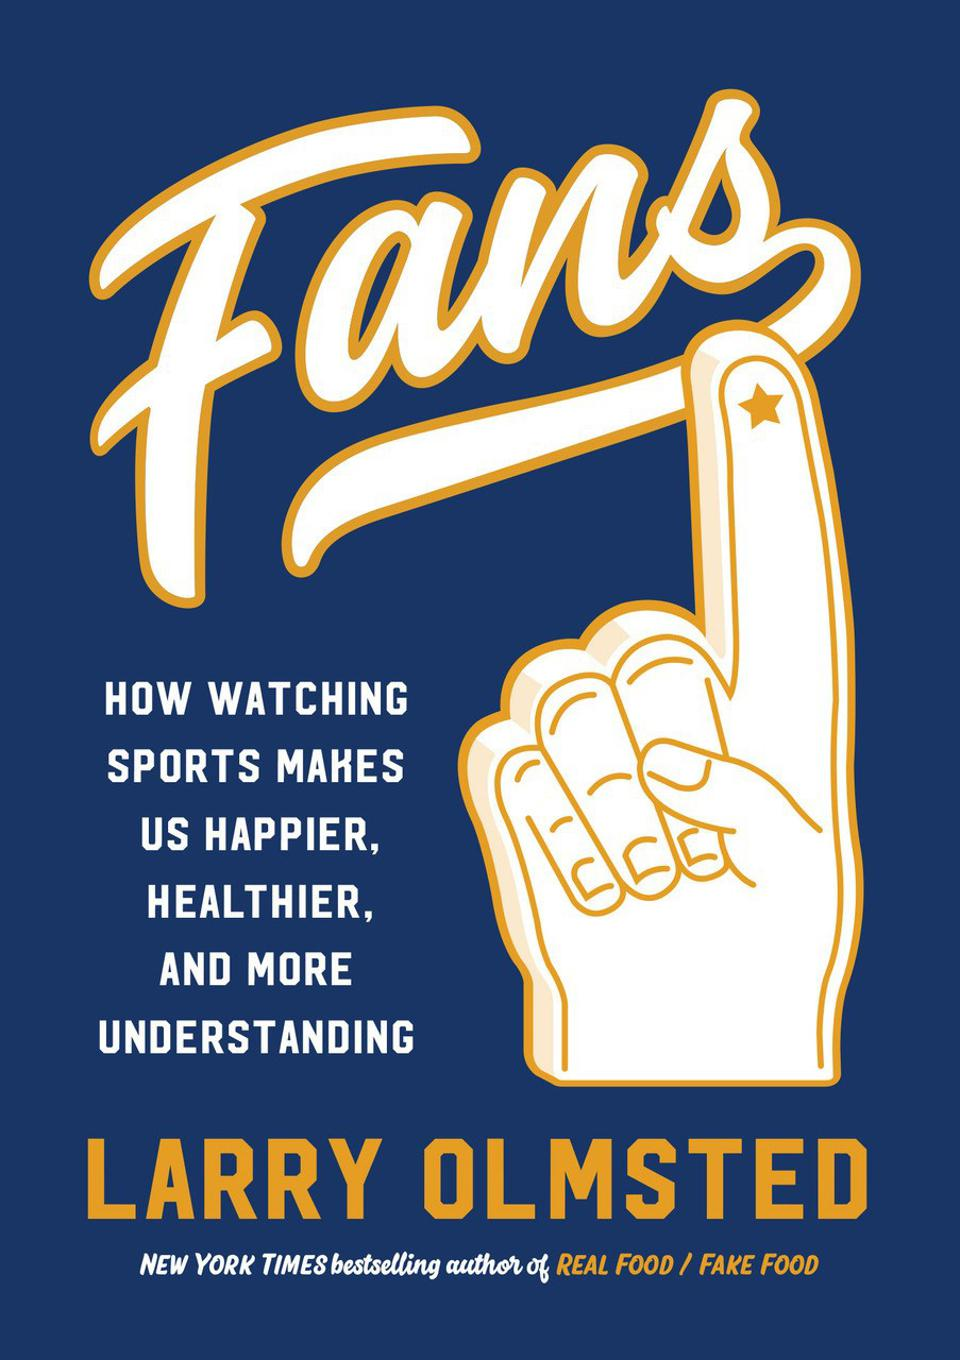 Cover of new sports Fans book by Larry Olmsted